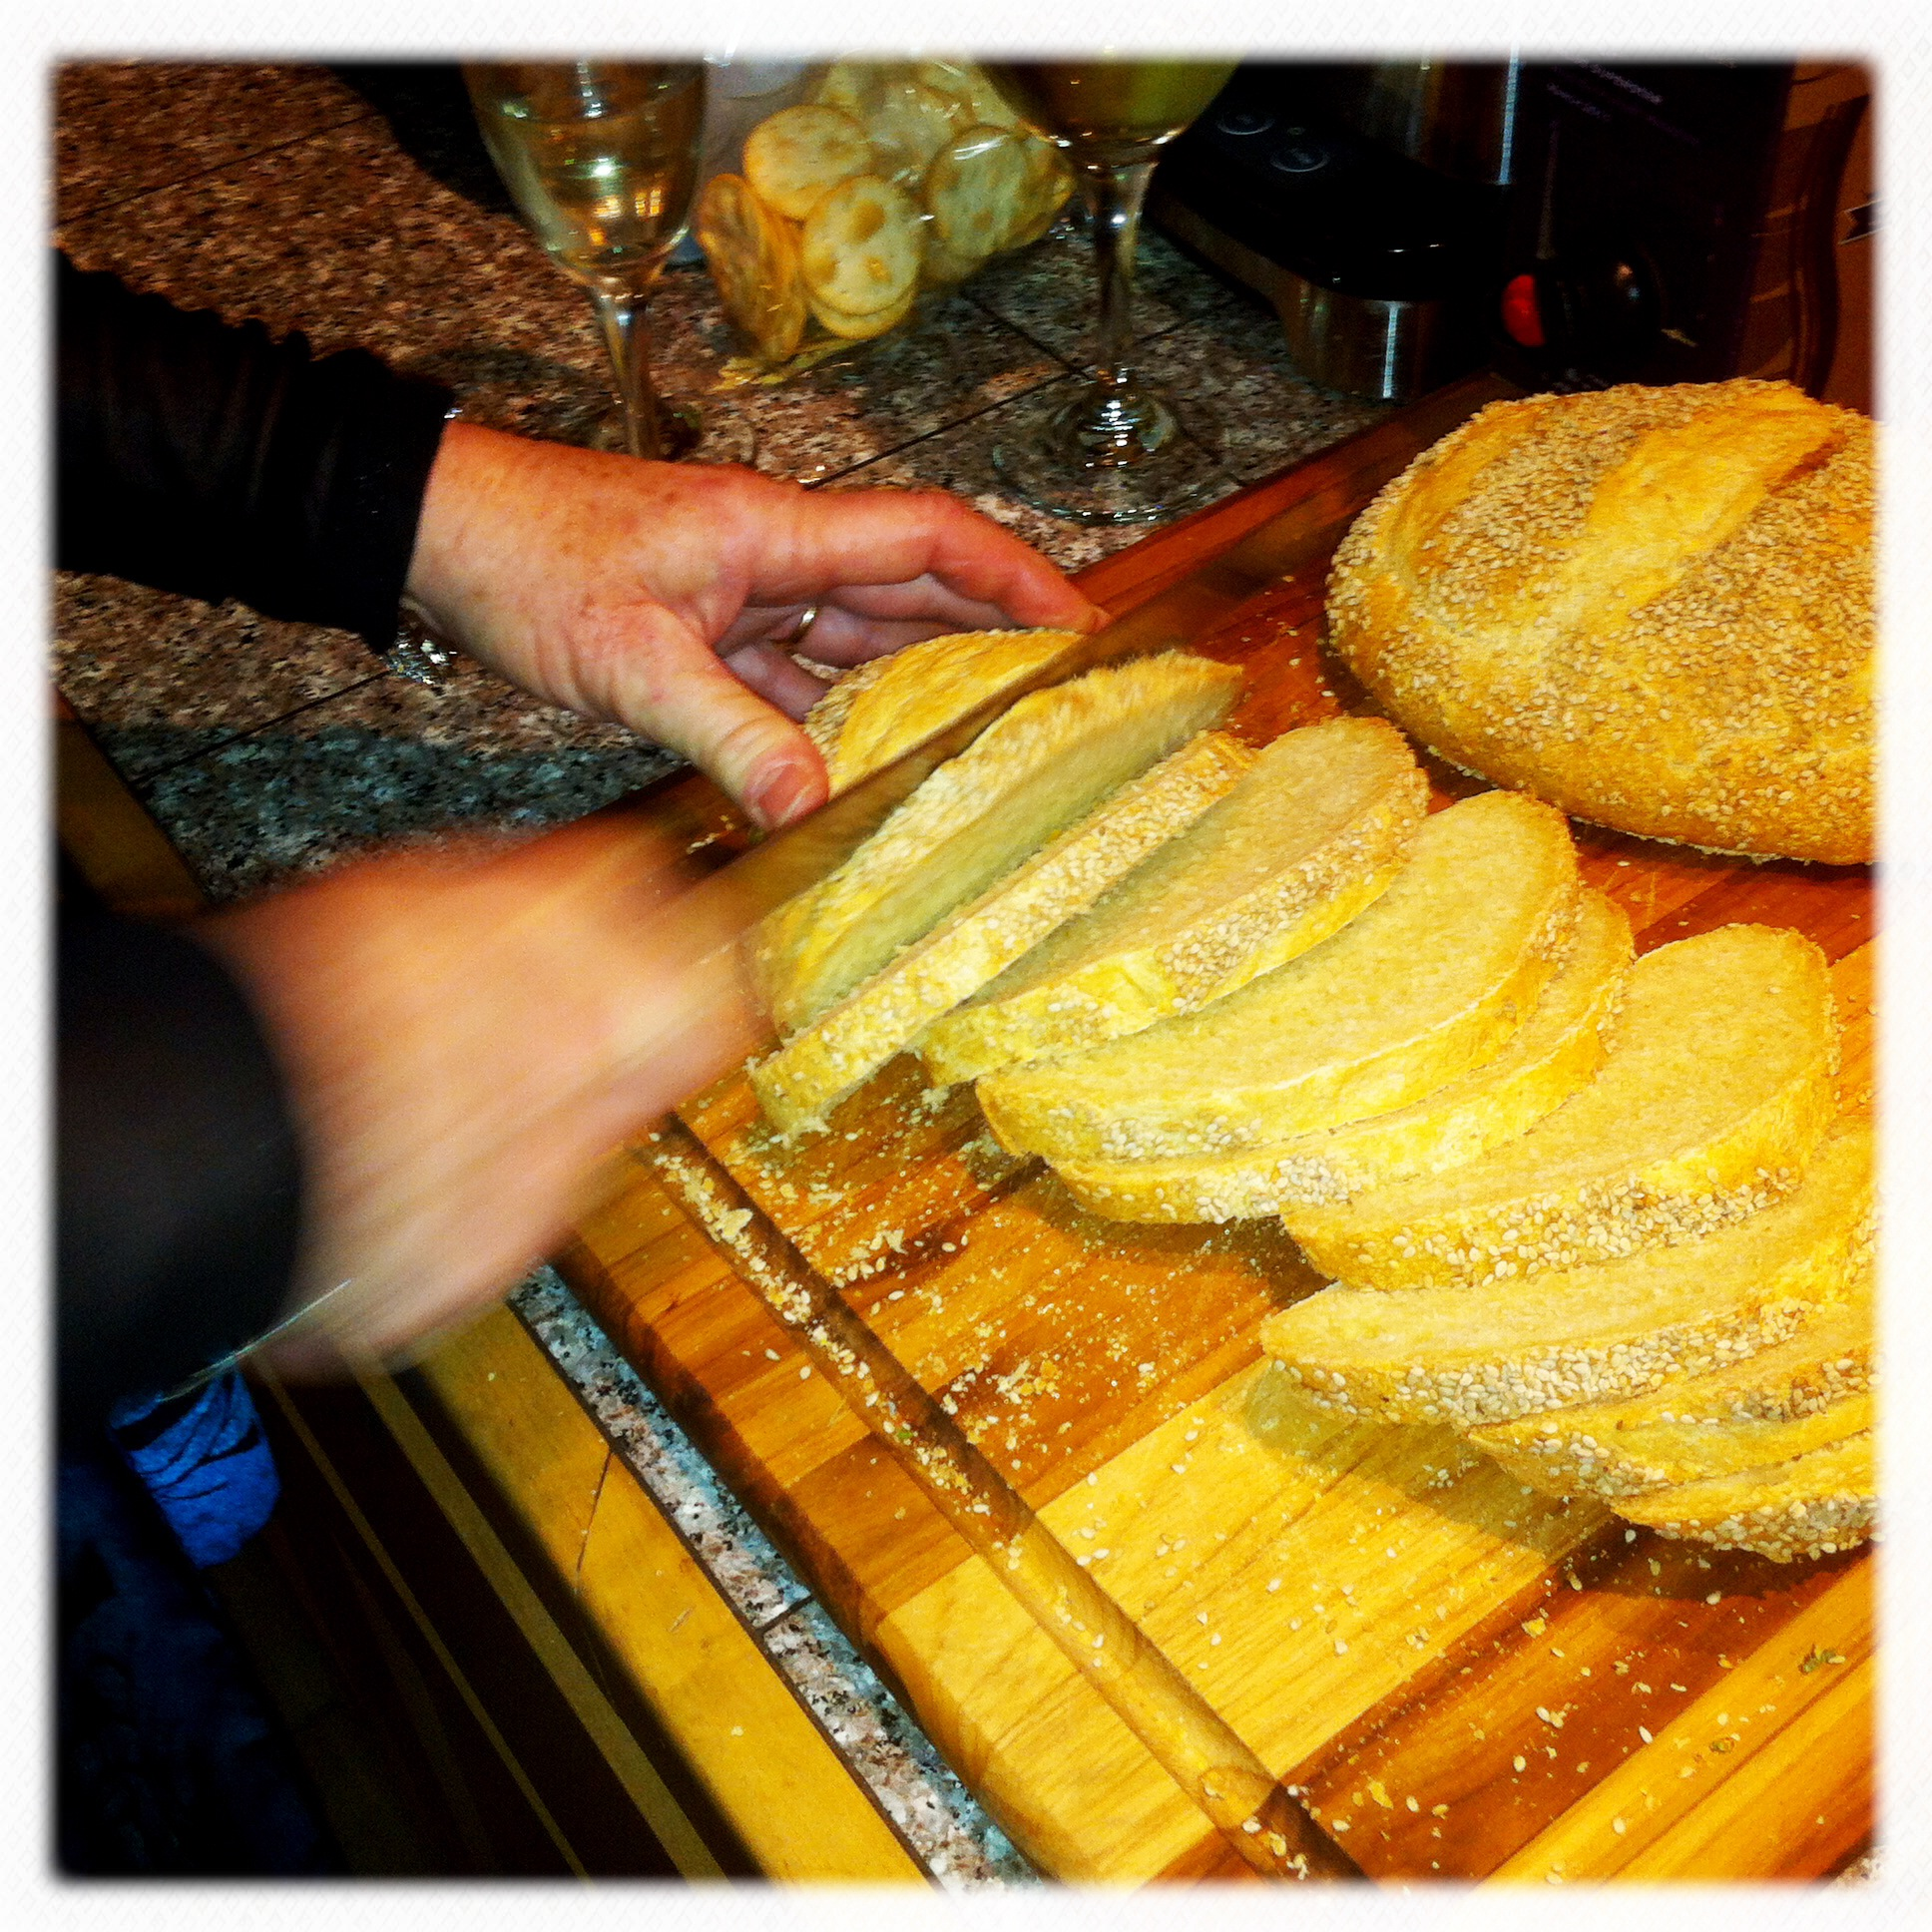 Cynthia slices homemade sourdough